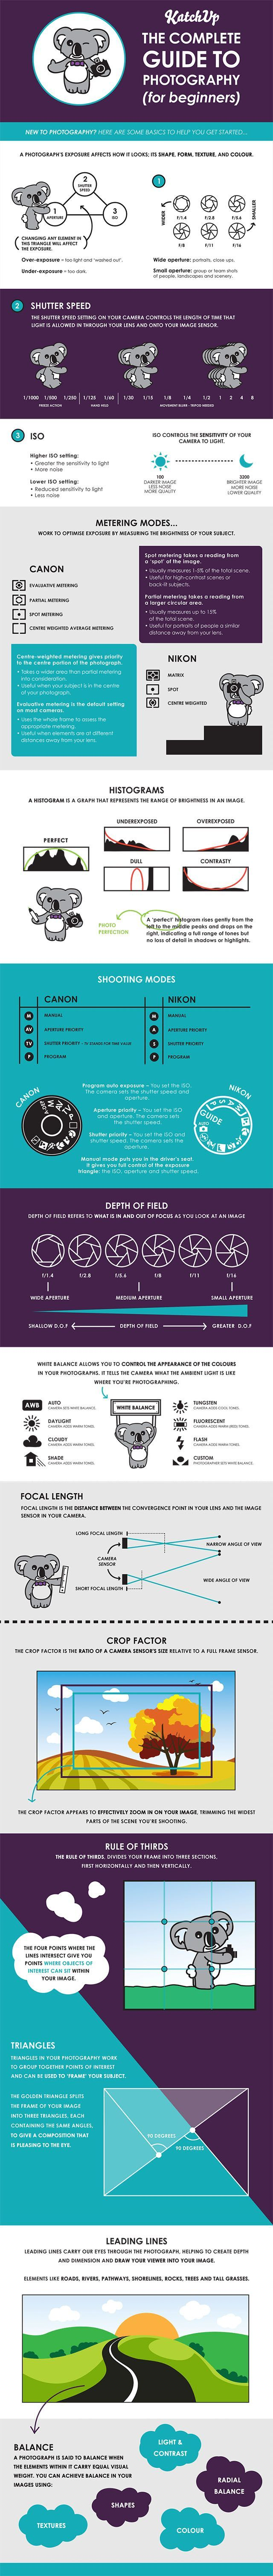 This Infographic is a Complete Guide to Photography for Beginners